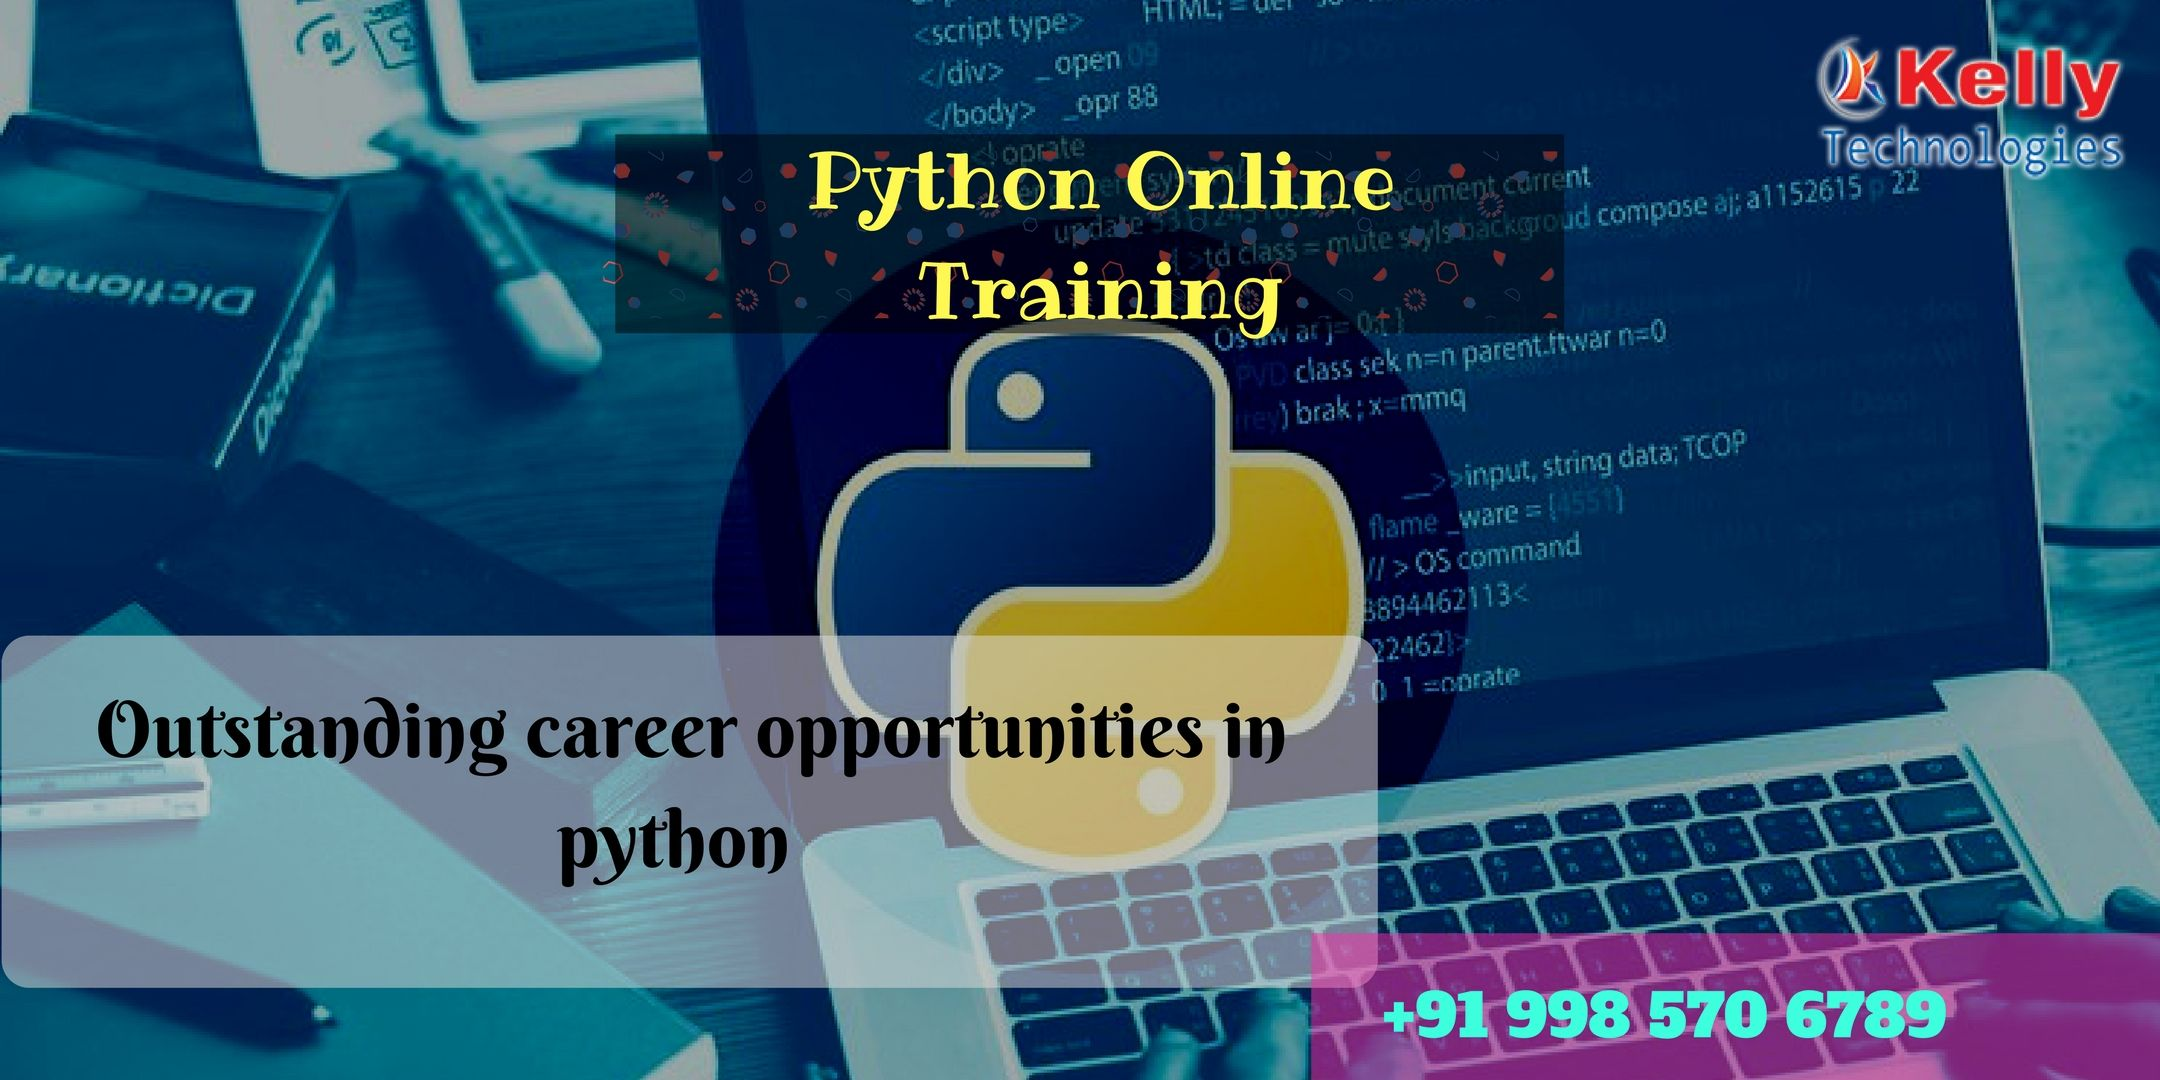 Pin by Kelly technologies on Best Pyhon Online Training